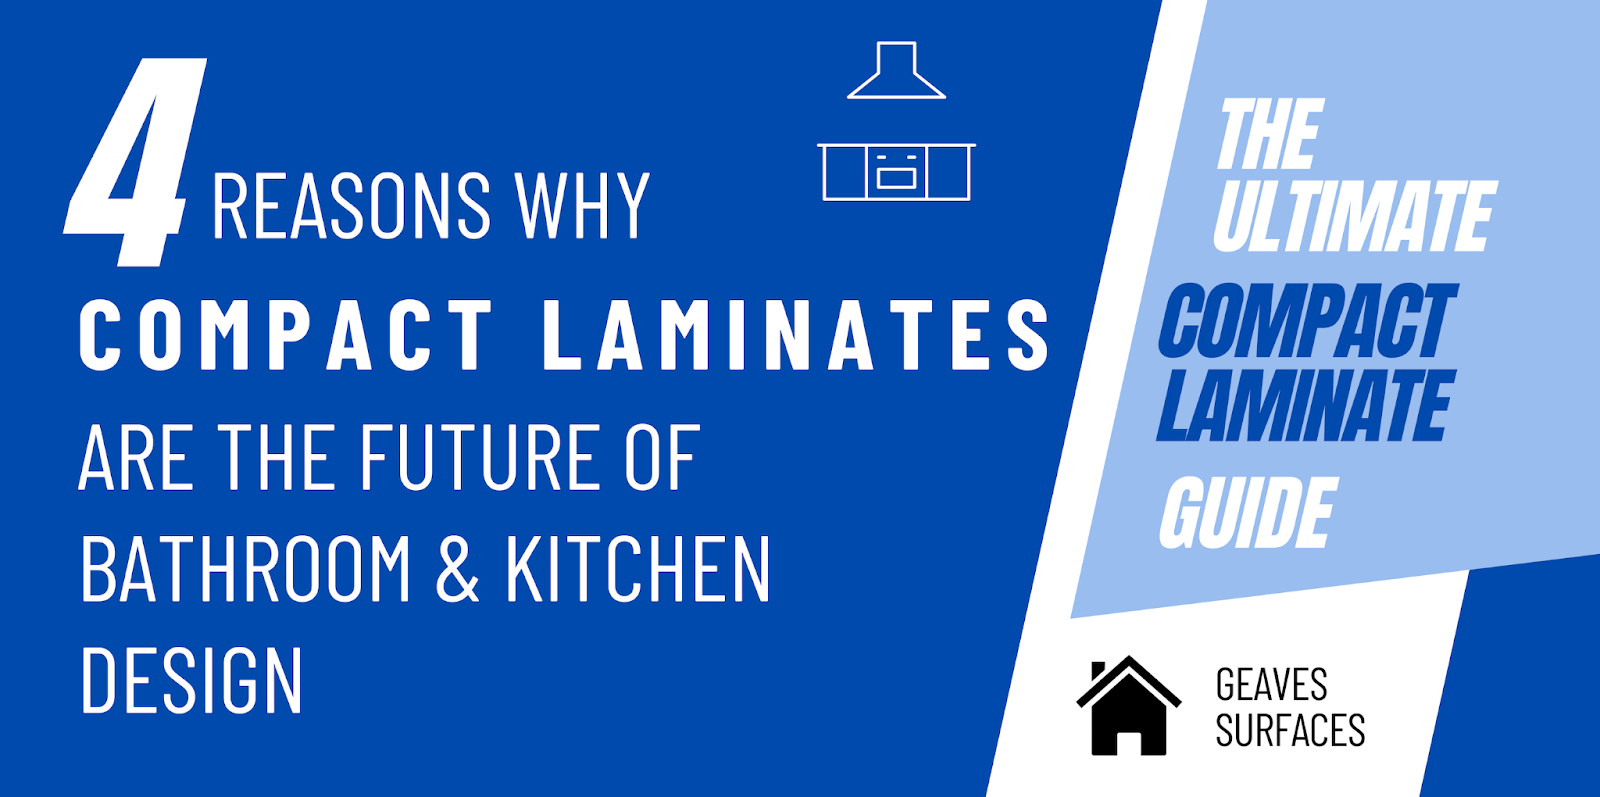 4 Reasons Why Compact Laminates are the Future of Bathroom & Kitchen Design